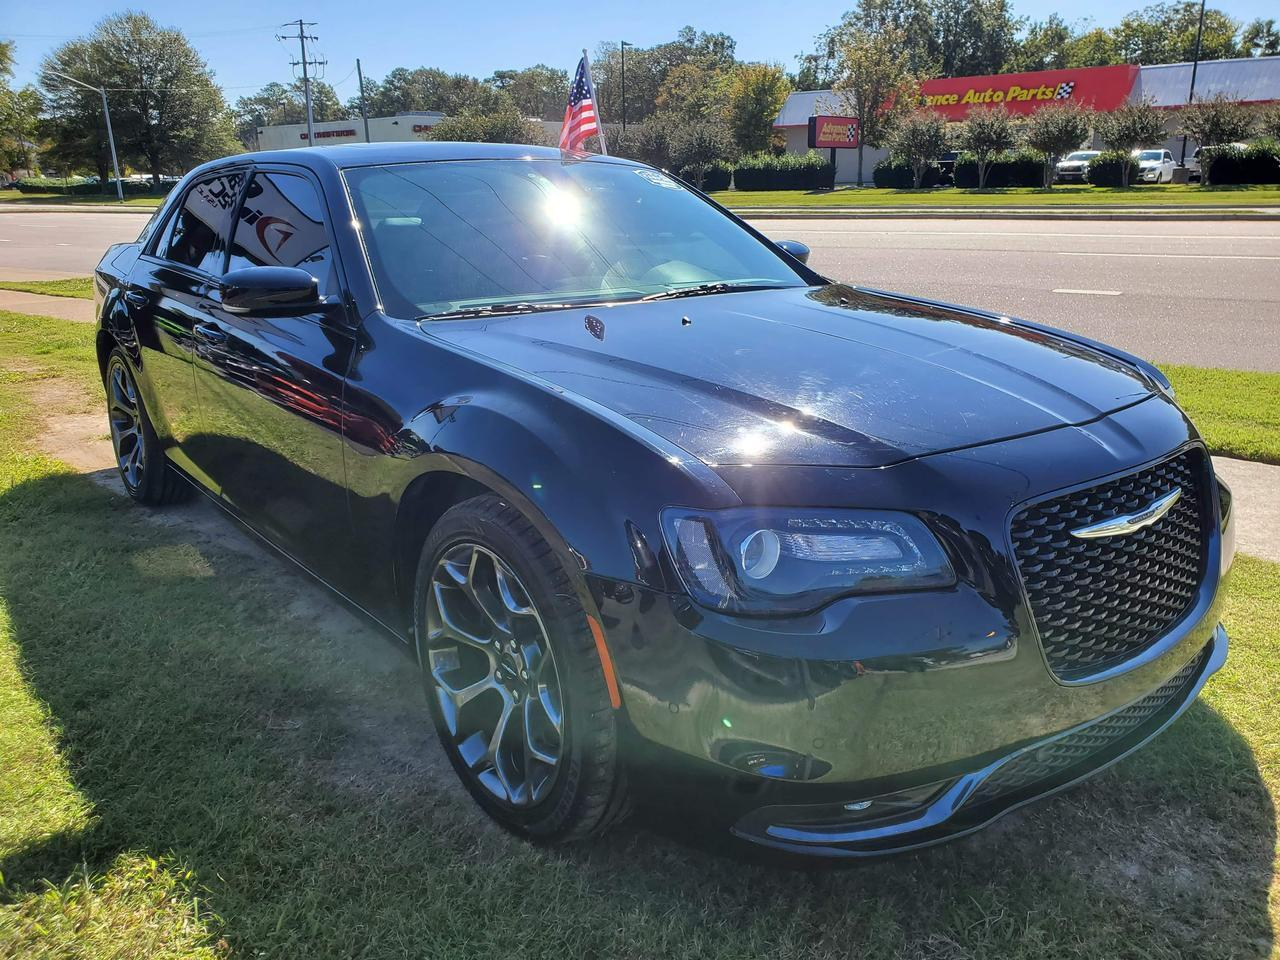 2016 CHRYSLER 300 S V6, LEATHER, HEATED SEATS, BACK UP CAM, NAVIGATION, BEATS SOUND SYSTEM, BLUETOOTH, ONLY 46K MILES! Virginia Beach VA